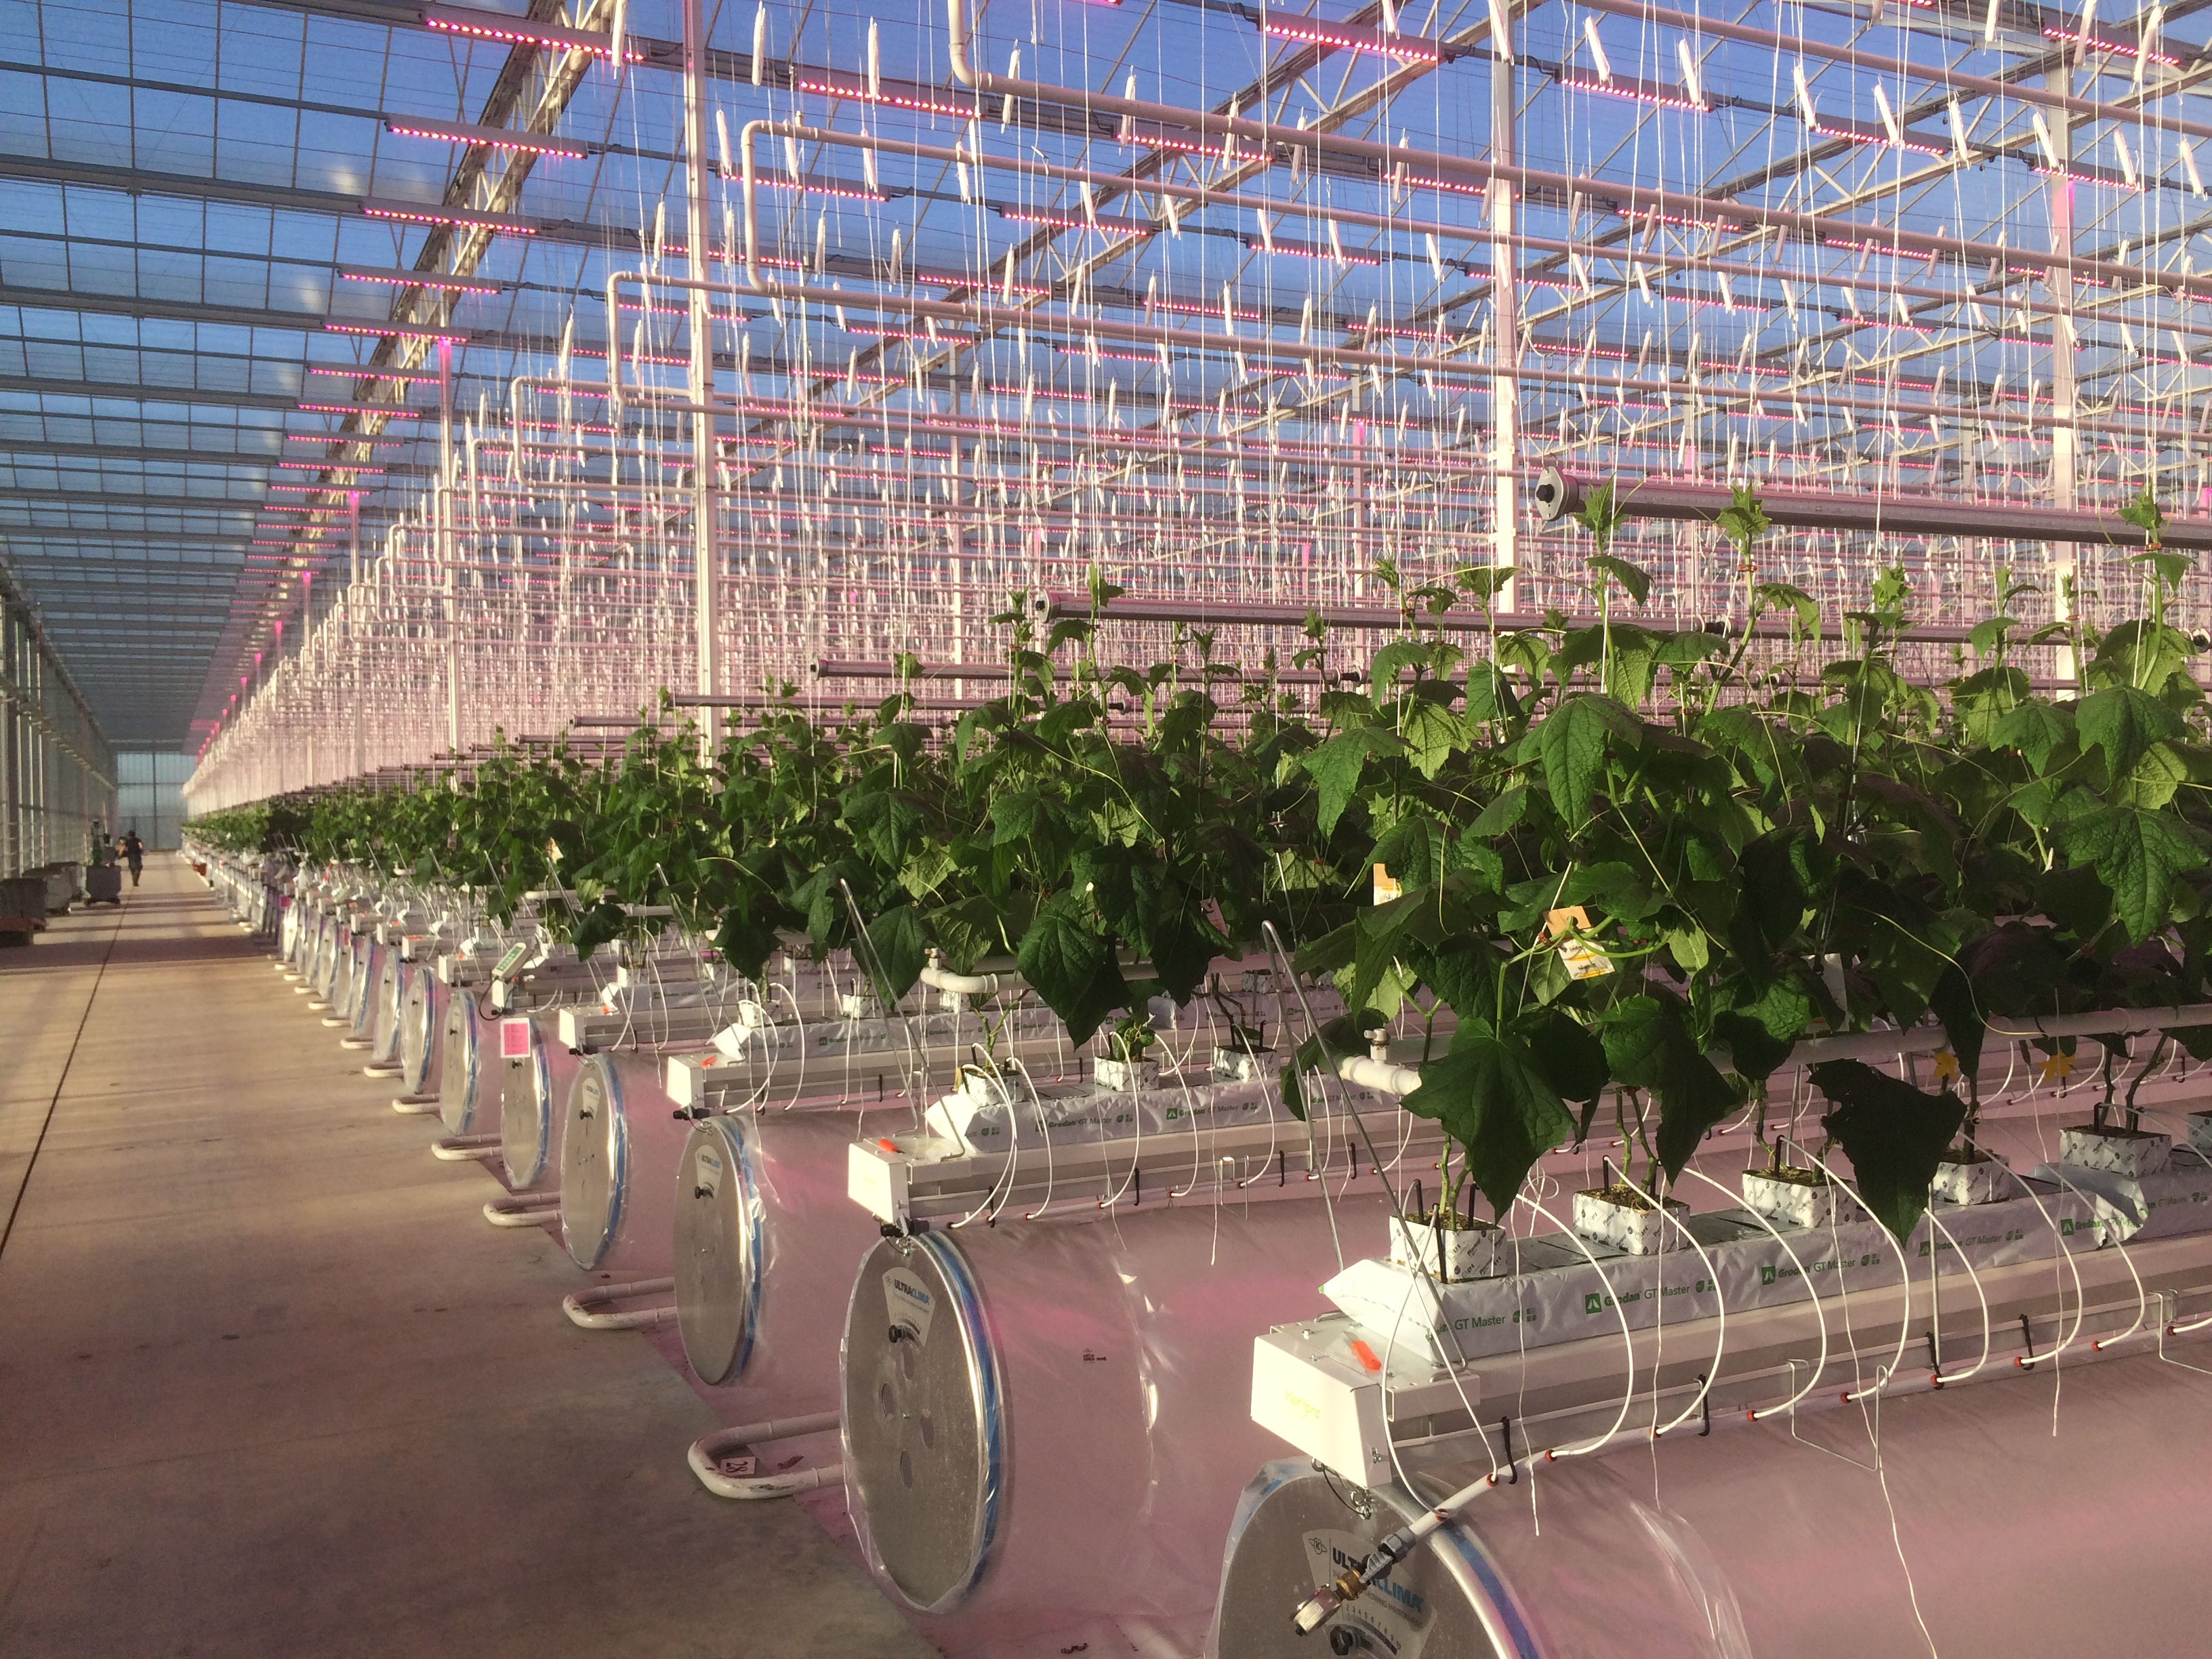 Jardins Réunis and Cheminant first in France to grow cucumbers year-round with full Philips GreenPower LED lighting installations